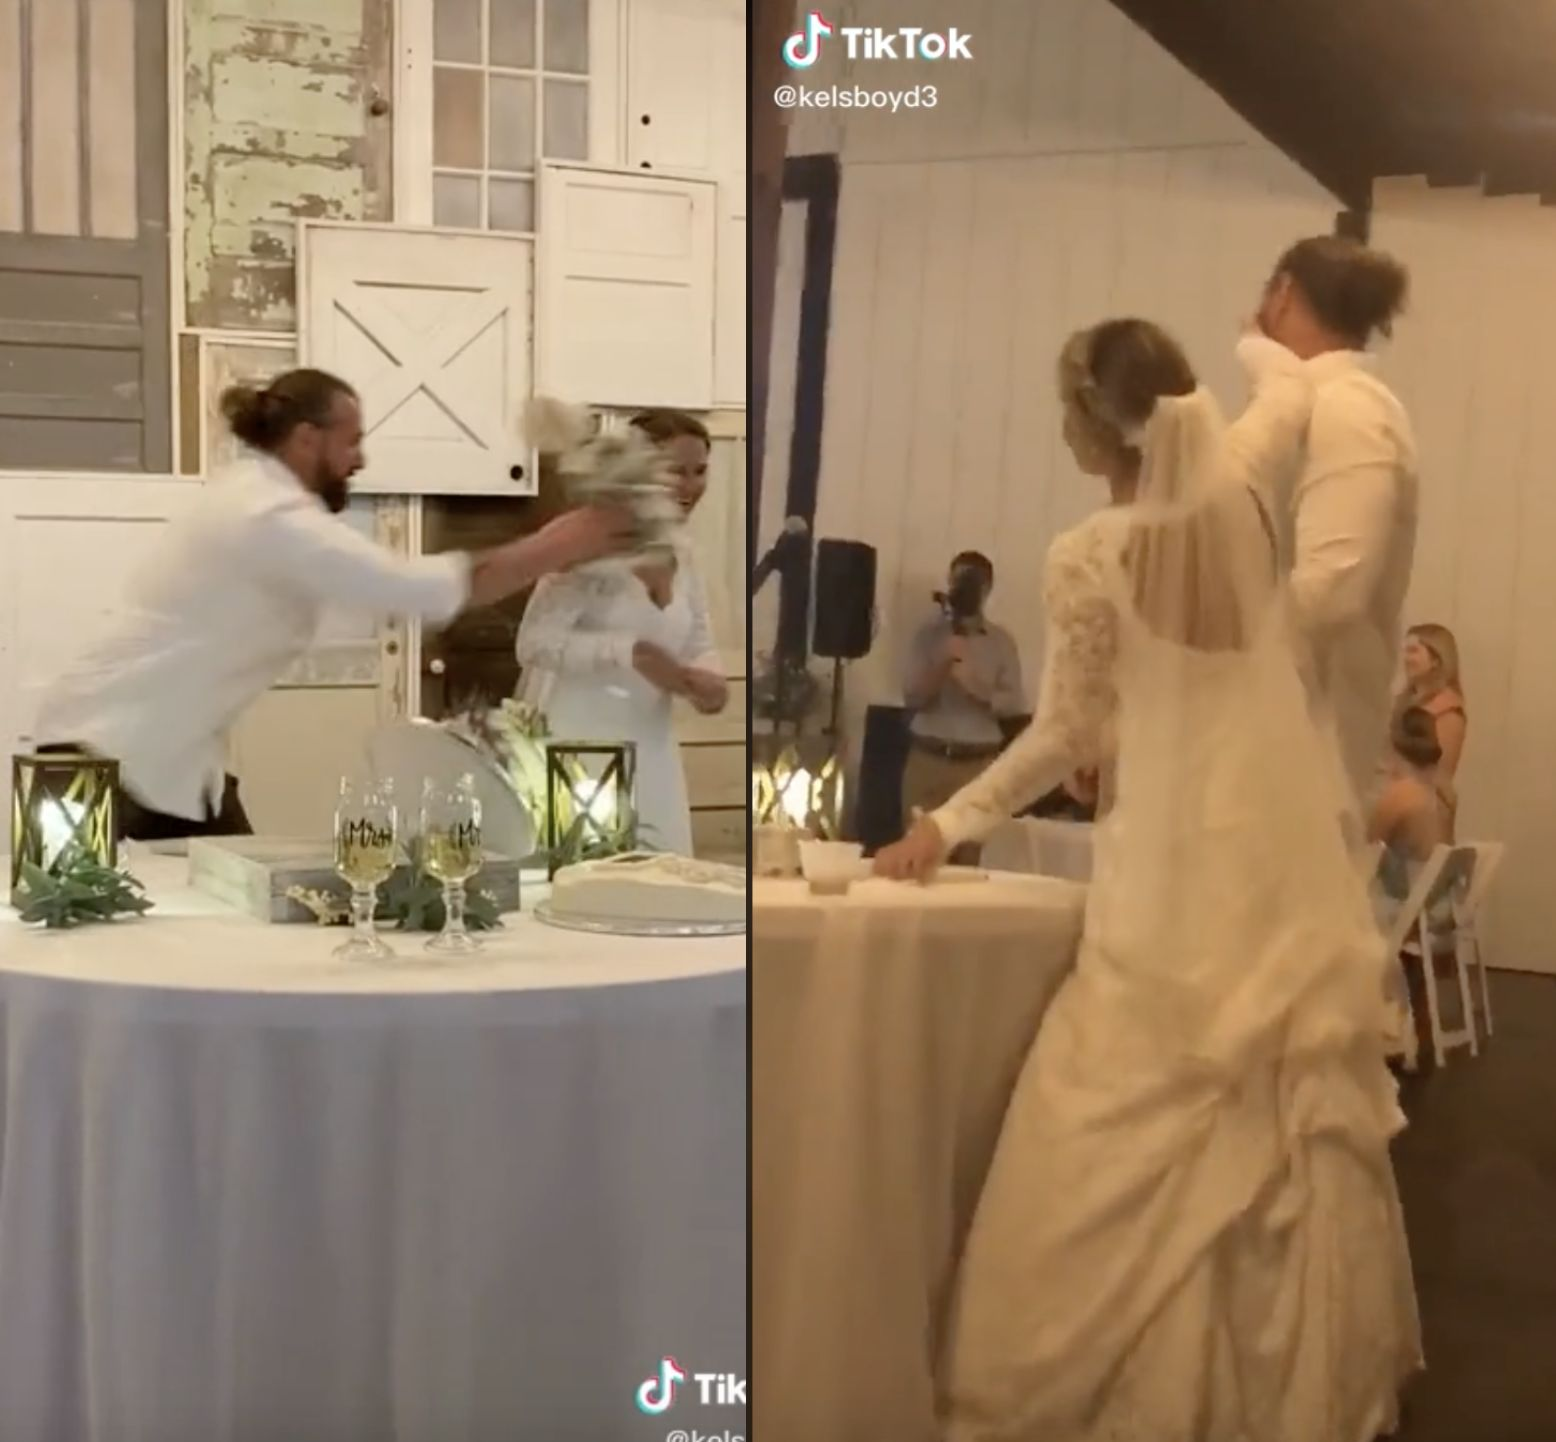 Bride defends husband after he throws entire cake at her